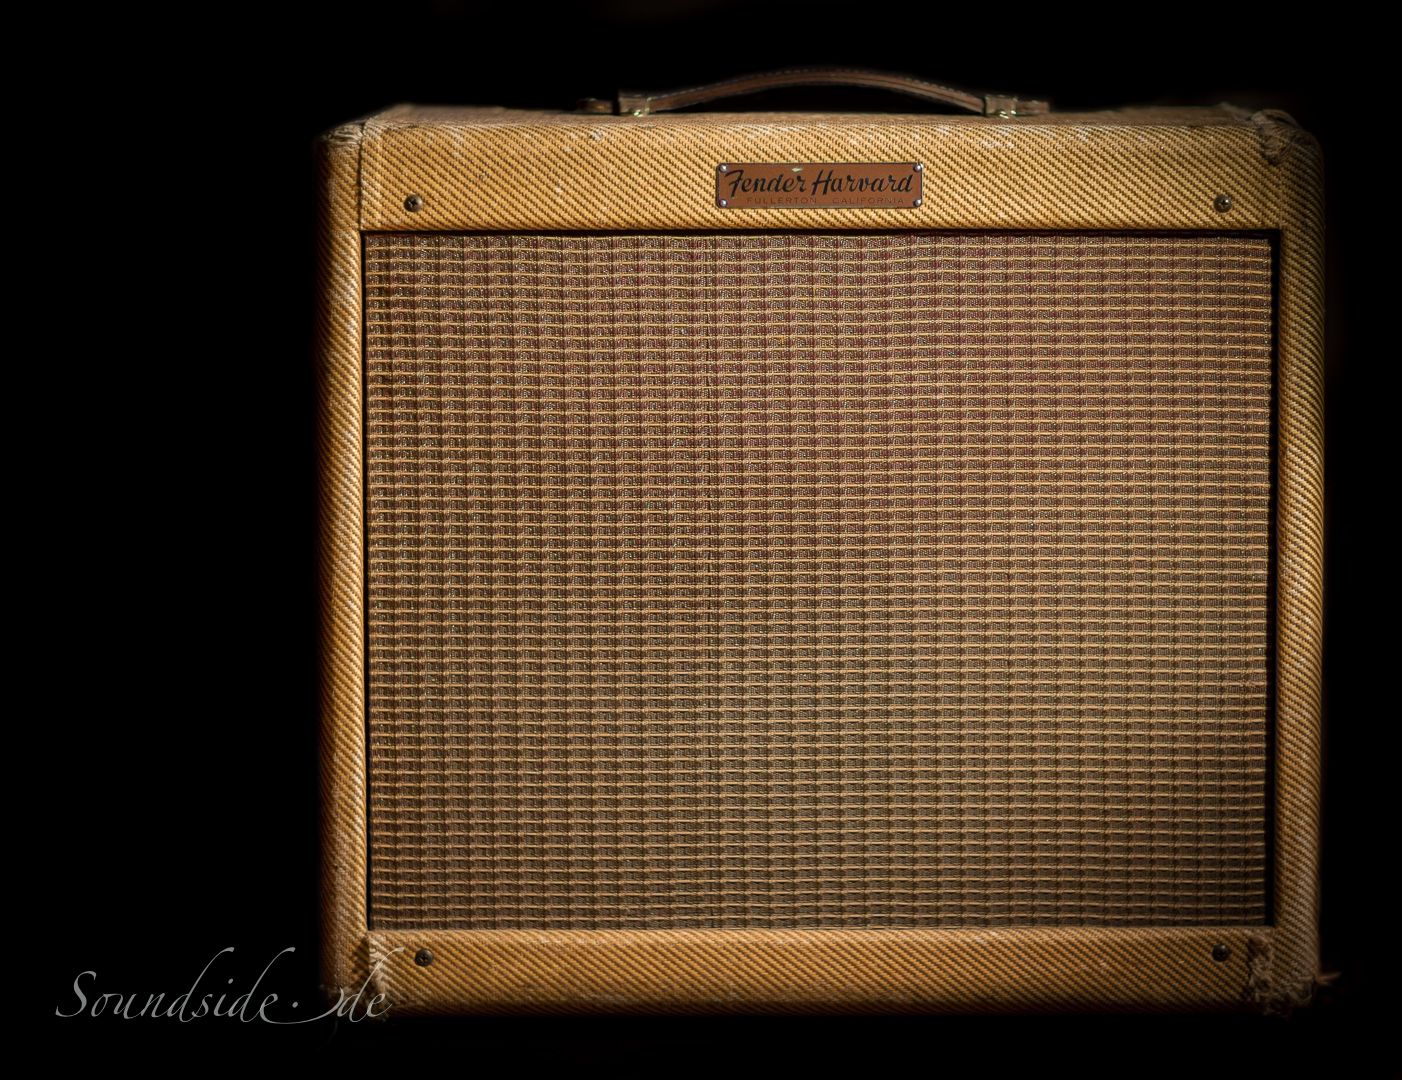 1957 fender harvard 1x10 combo photo by cool amps in 2019 electric guitar amp. Black Bedroom Furniture Sets. Home Design Ideas